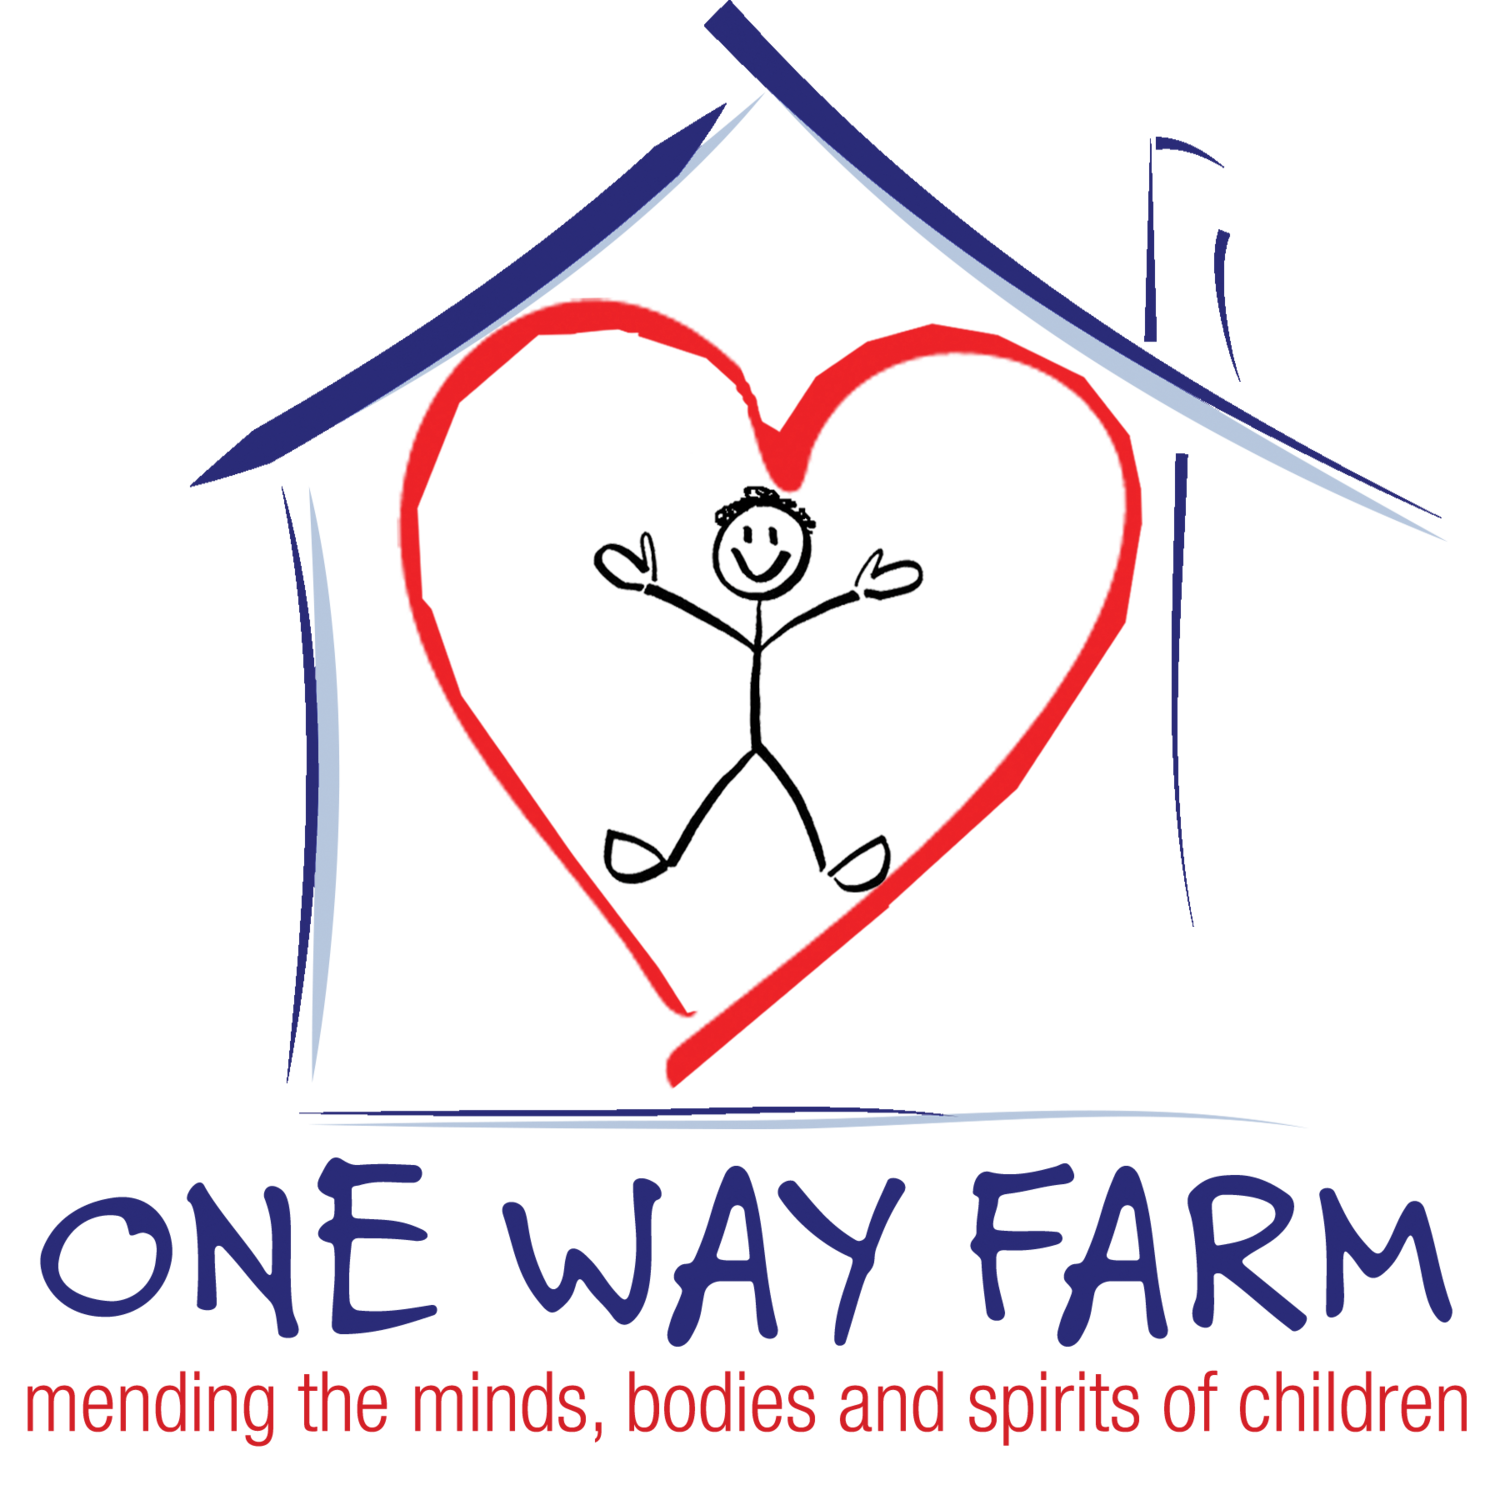 One Way Farm Children's Home